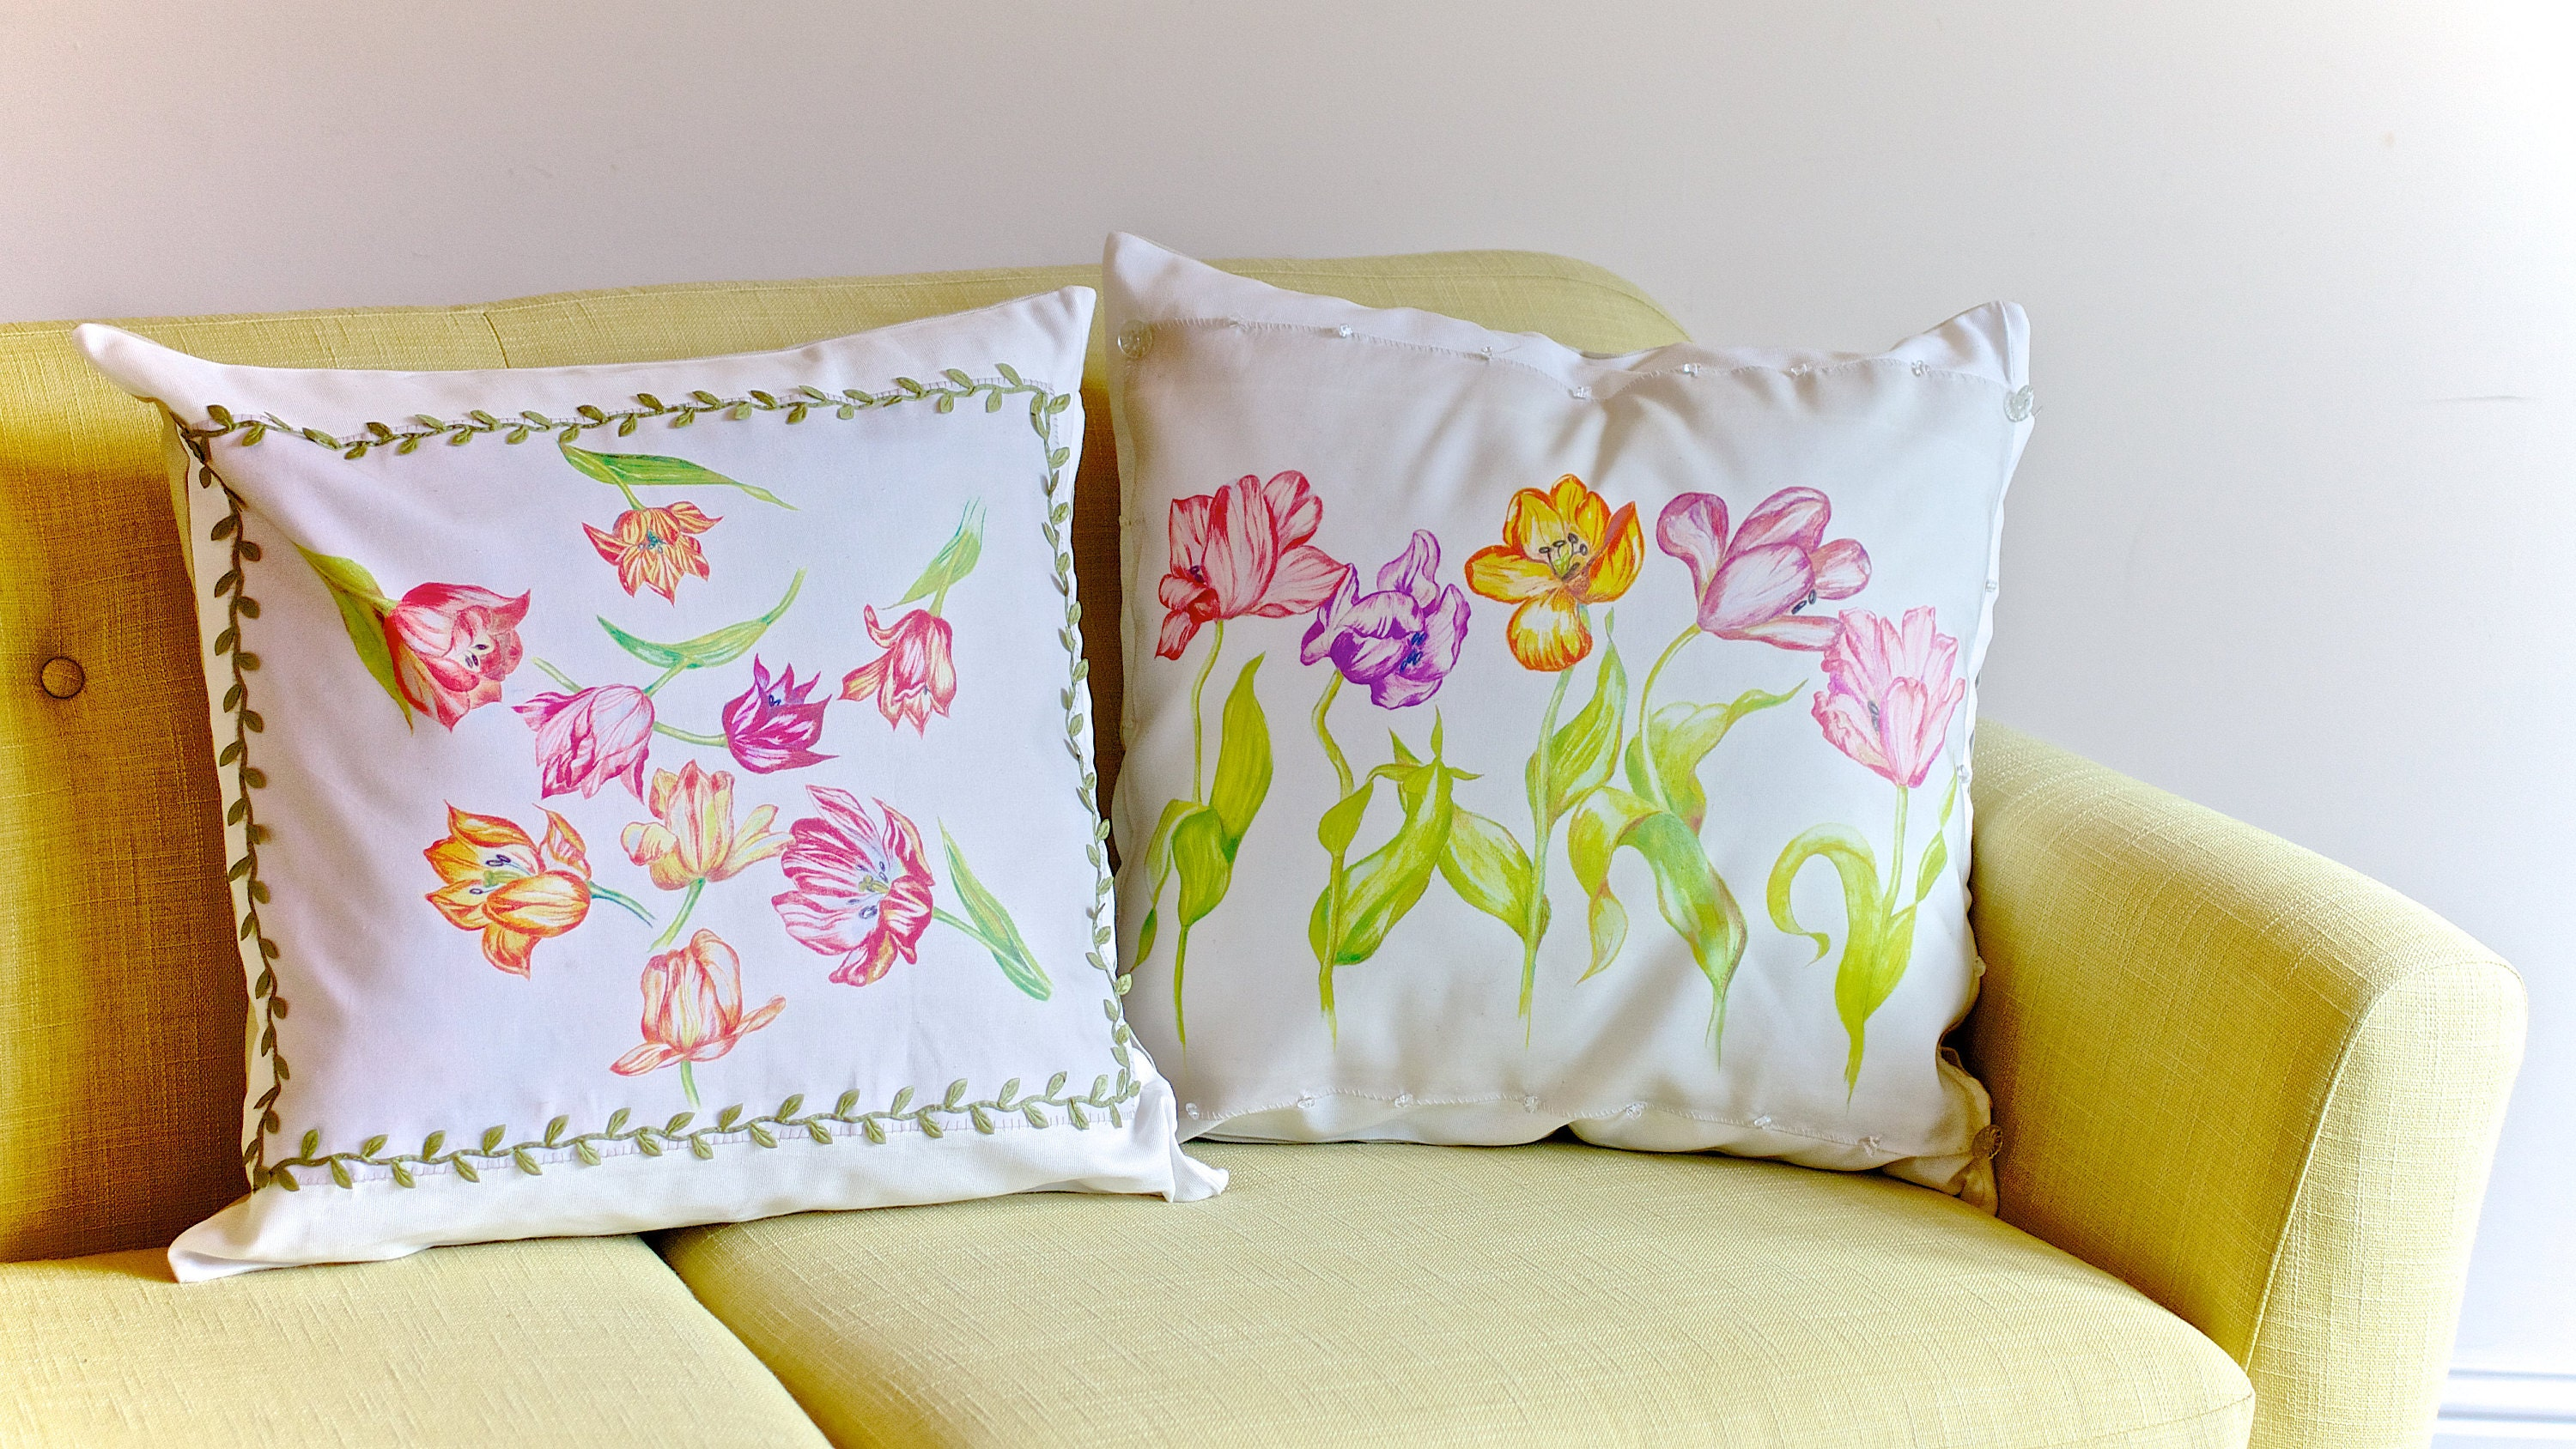 Two Tulip Pillows designed by Paula Kuitenbrouwer